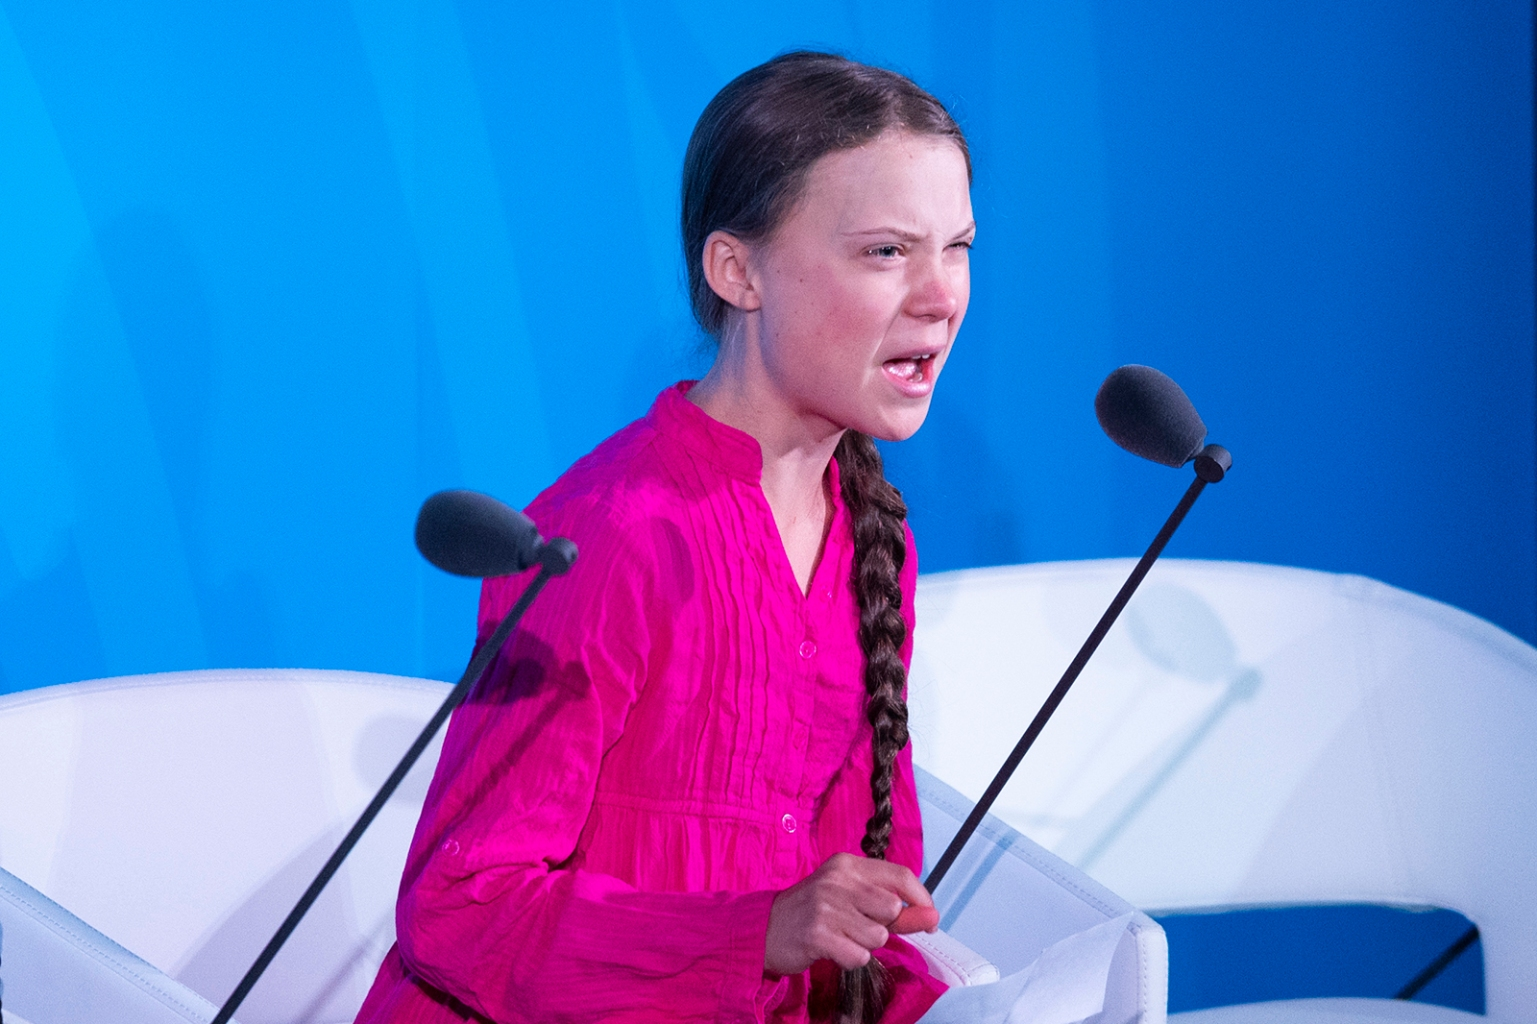 Climate activist Greta Thunberg speaks during the U.N. Climate Action Summit in New York City on Sept. 23. JOHANNES EISELE/AFP/Getty Images